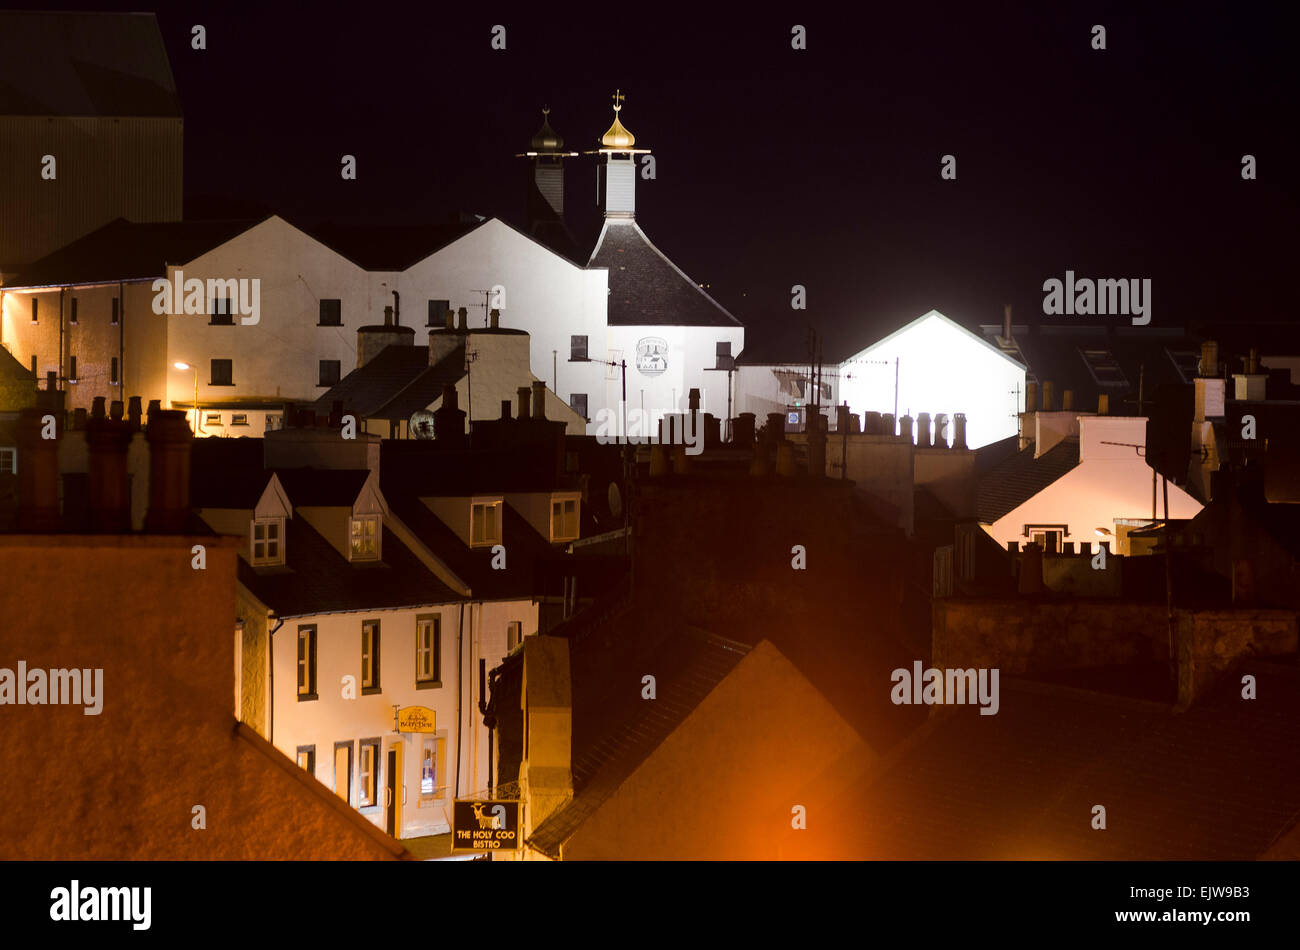 bowmore with distillery and street lights at dusk - Stock Image